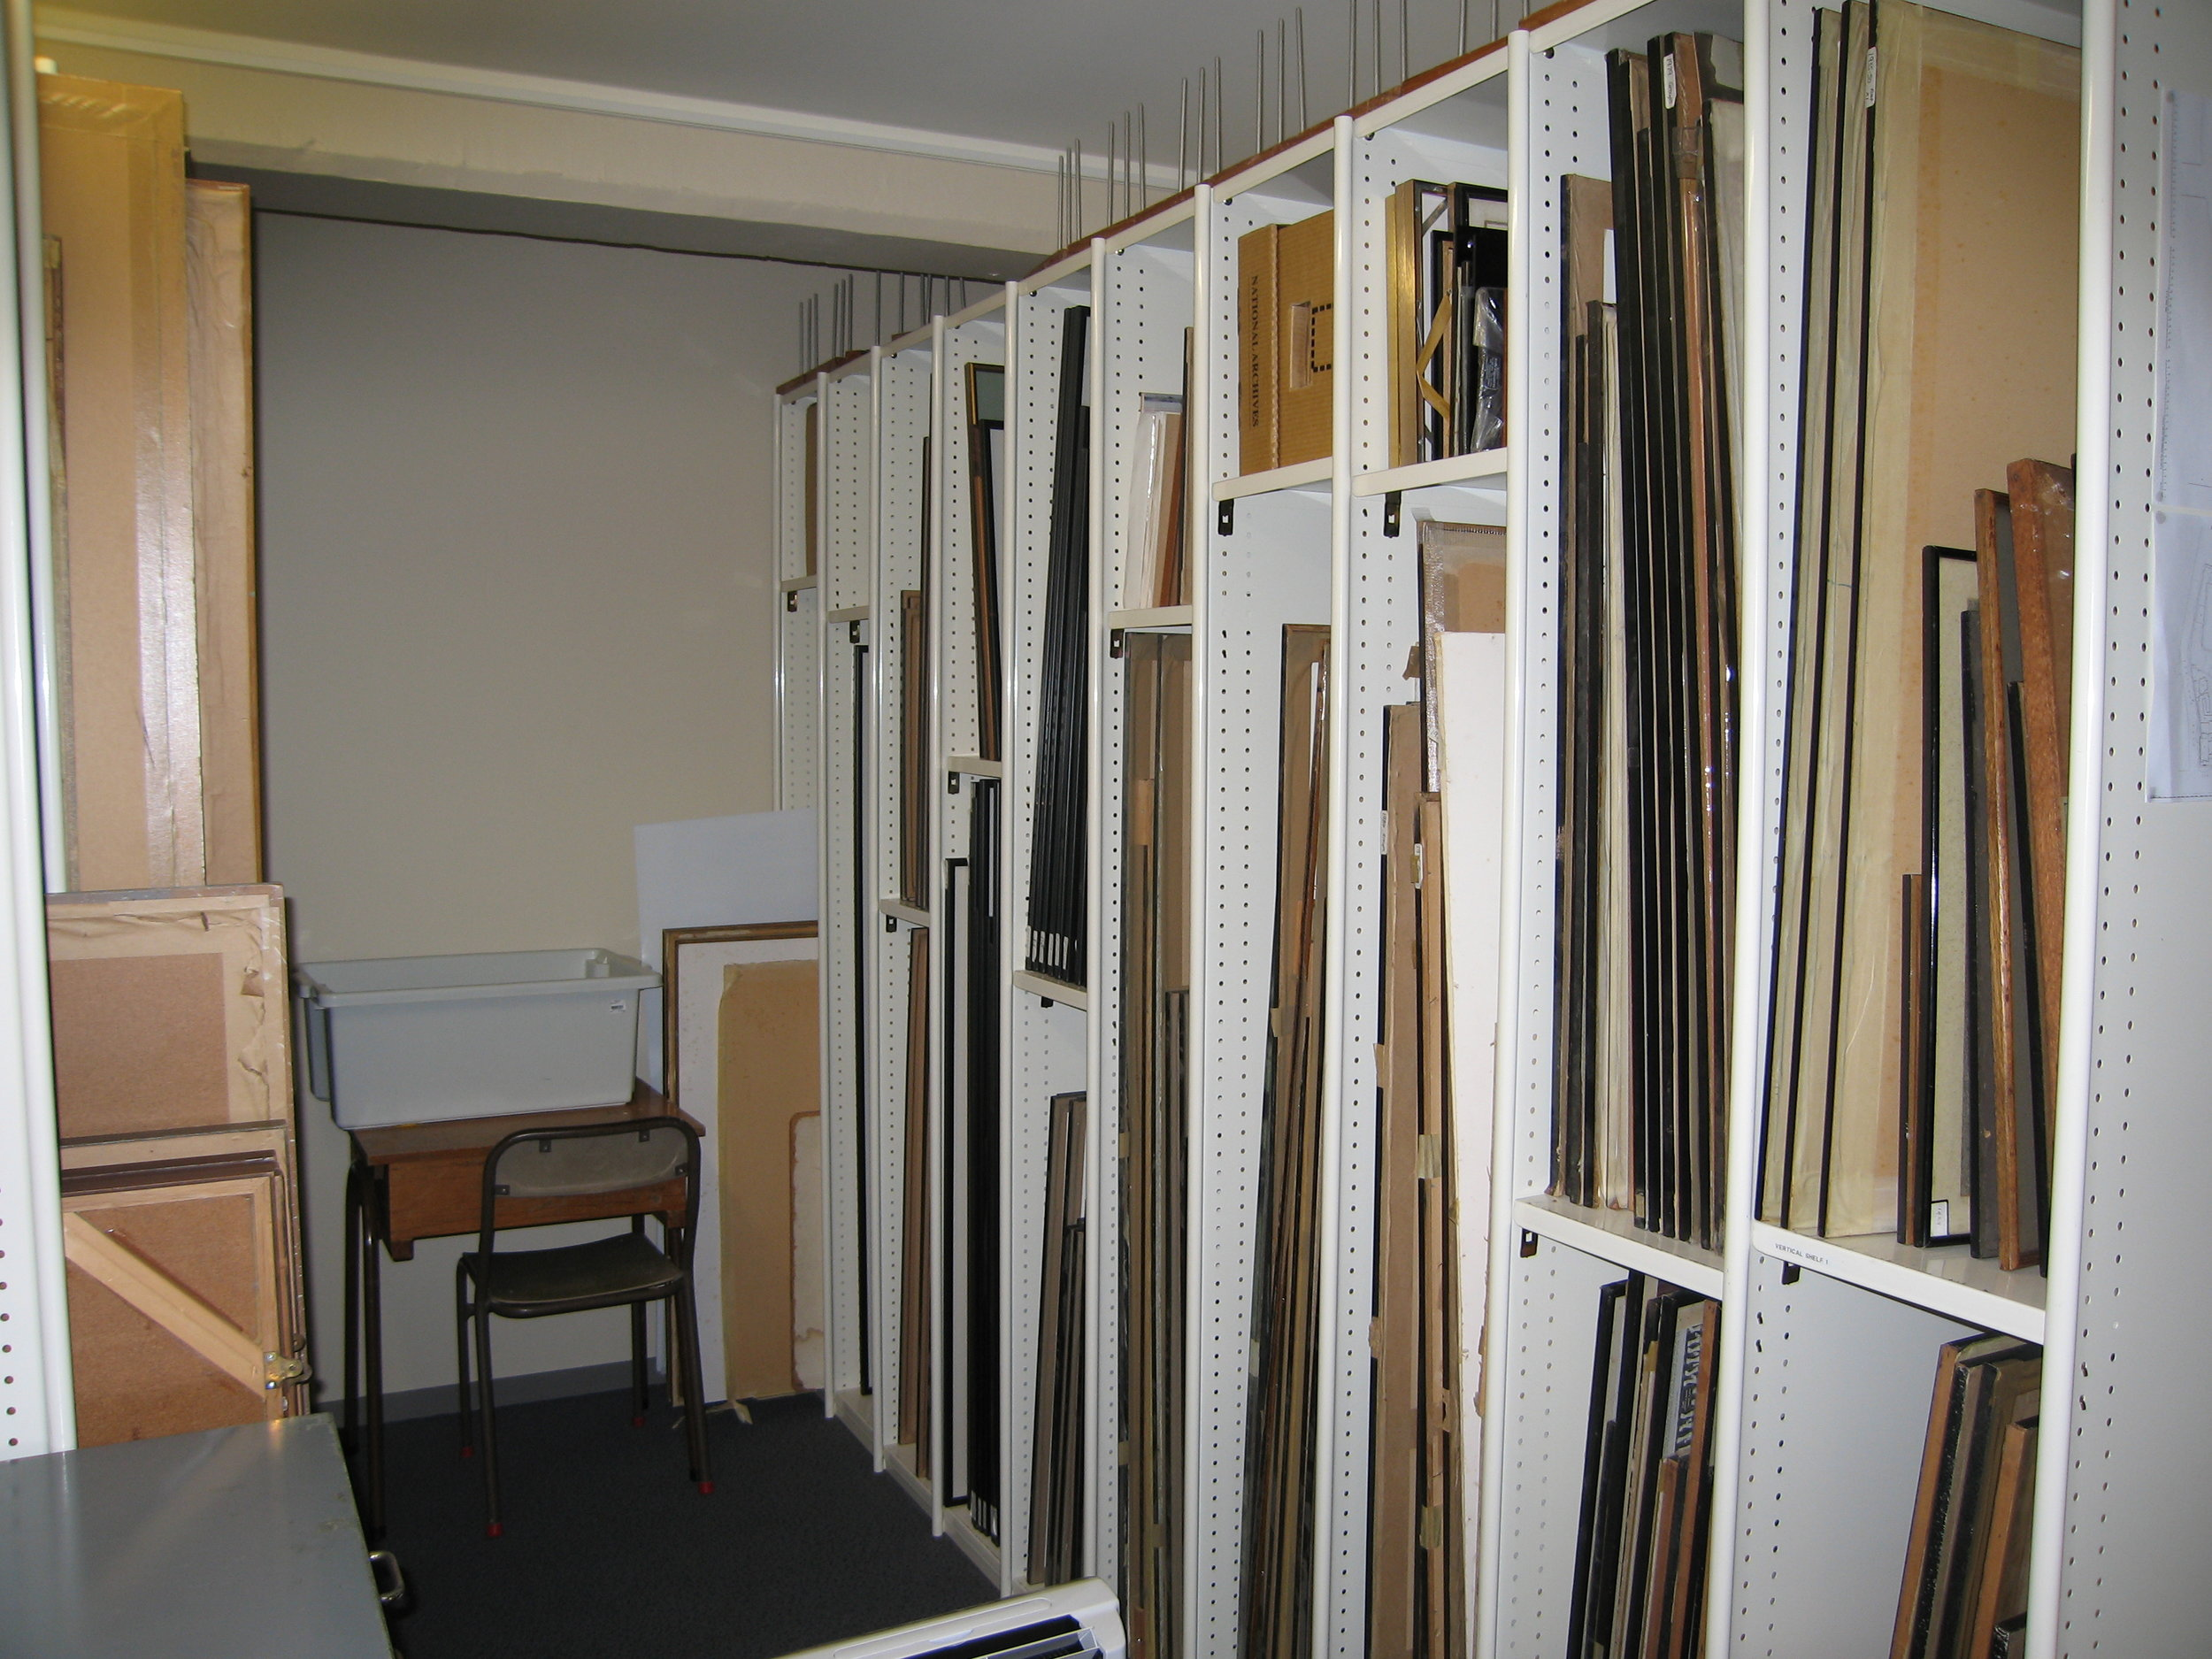 Panel Art Shelving.JPG